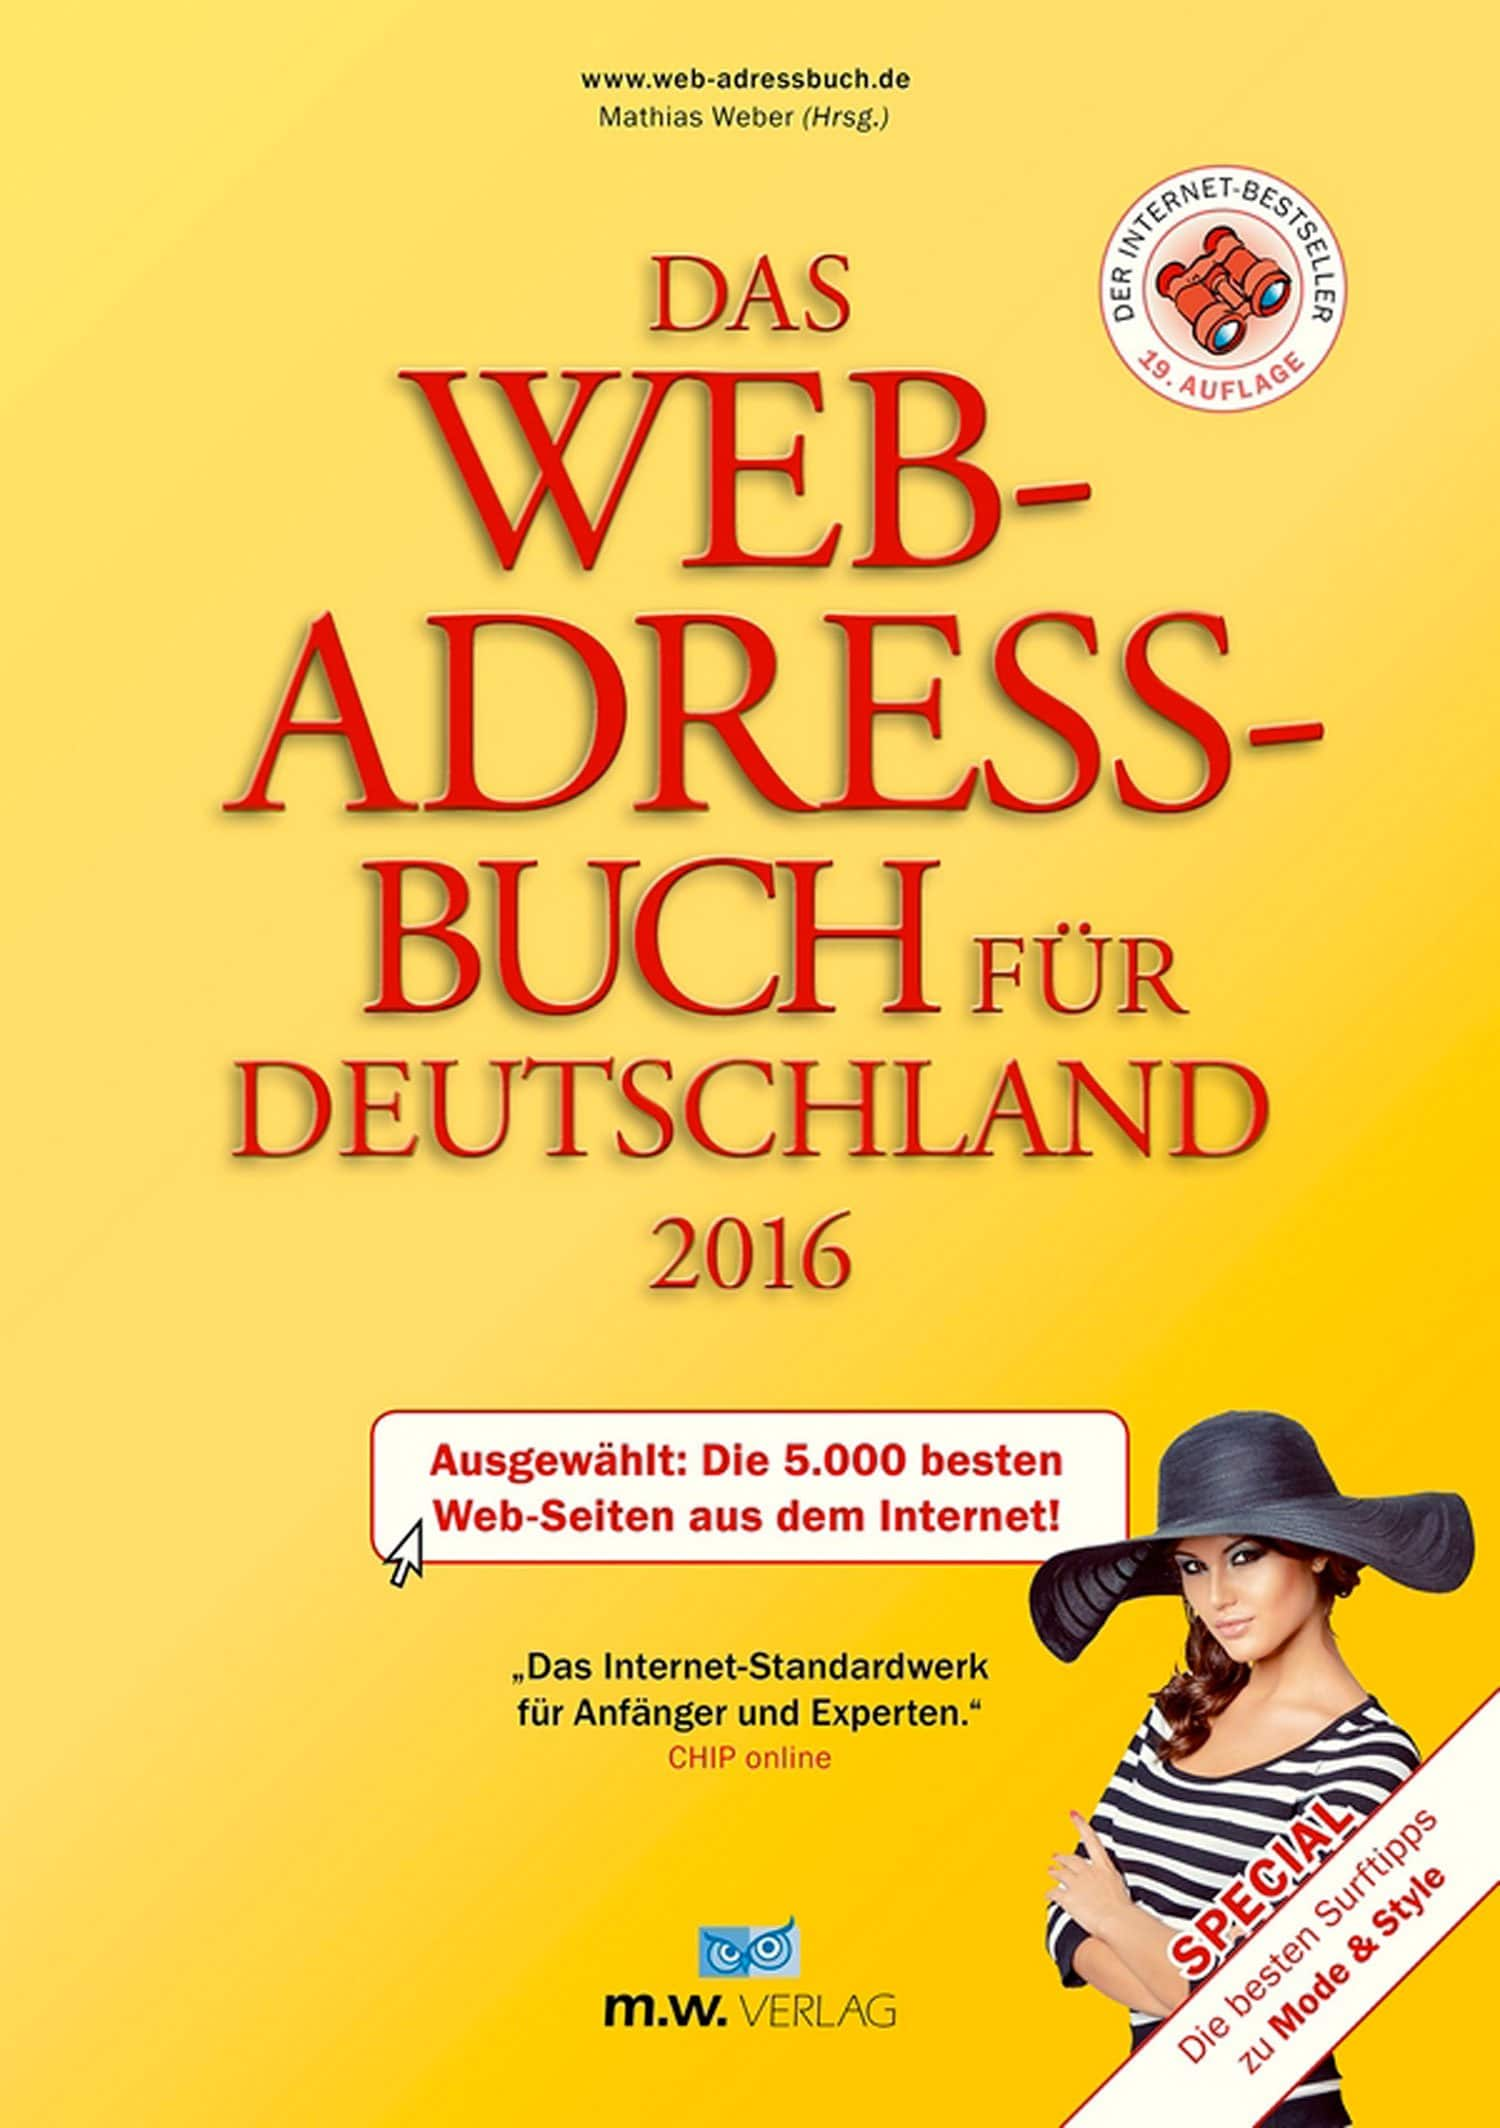 ARTICLE-German website among best websites of the year 2016